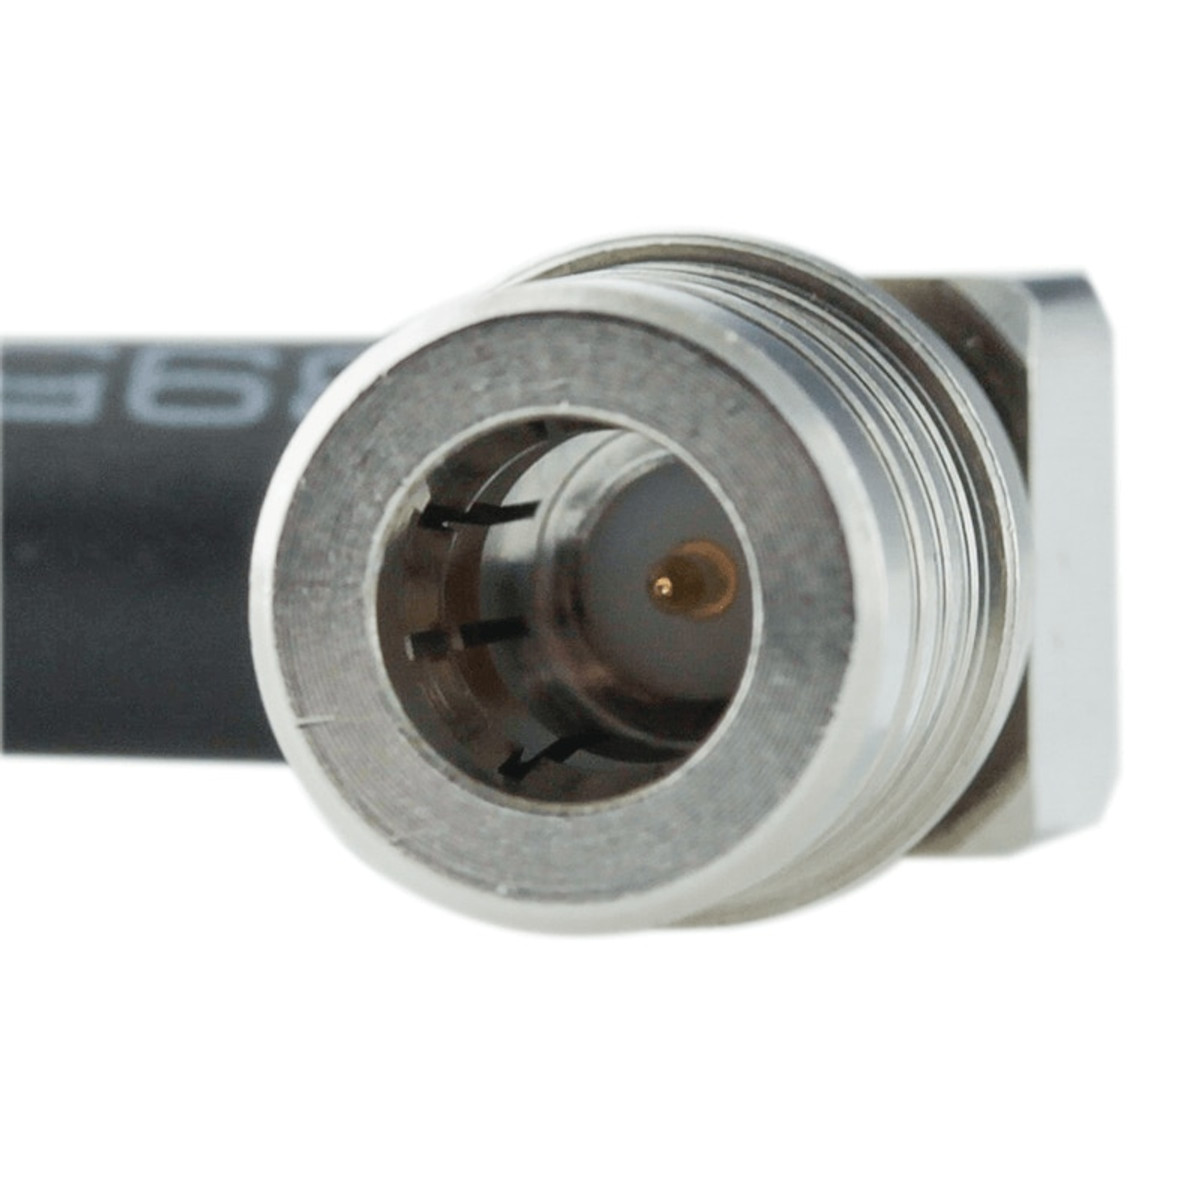 Bolton Technical 1 meter N-Male Bulkhead to QMA-Male Angle Coax RF Pigtail Cable